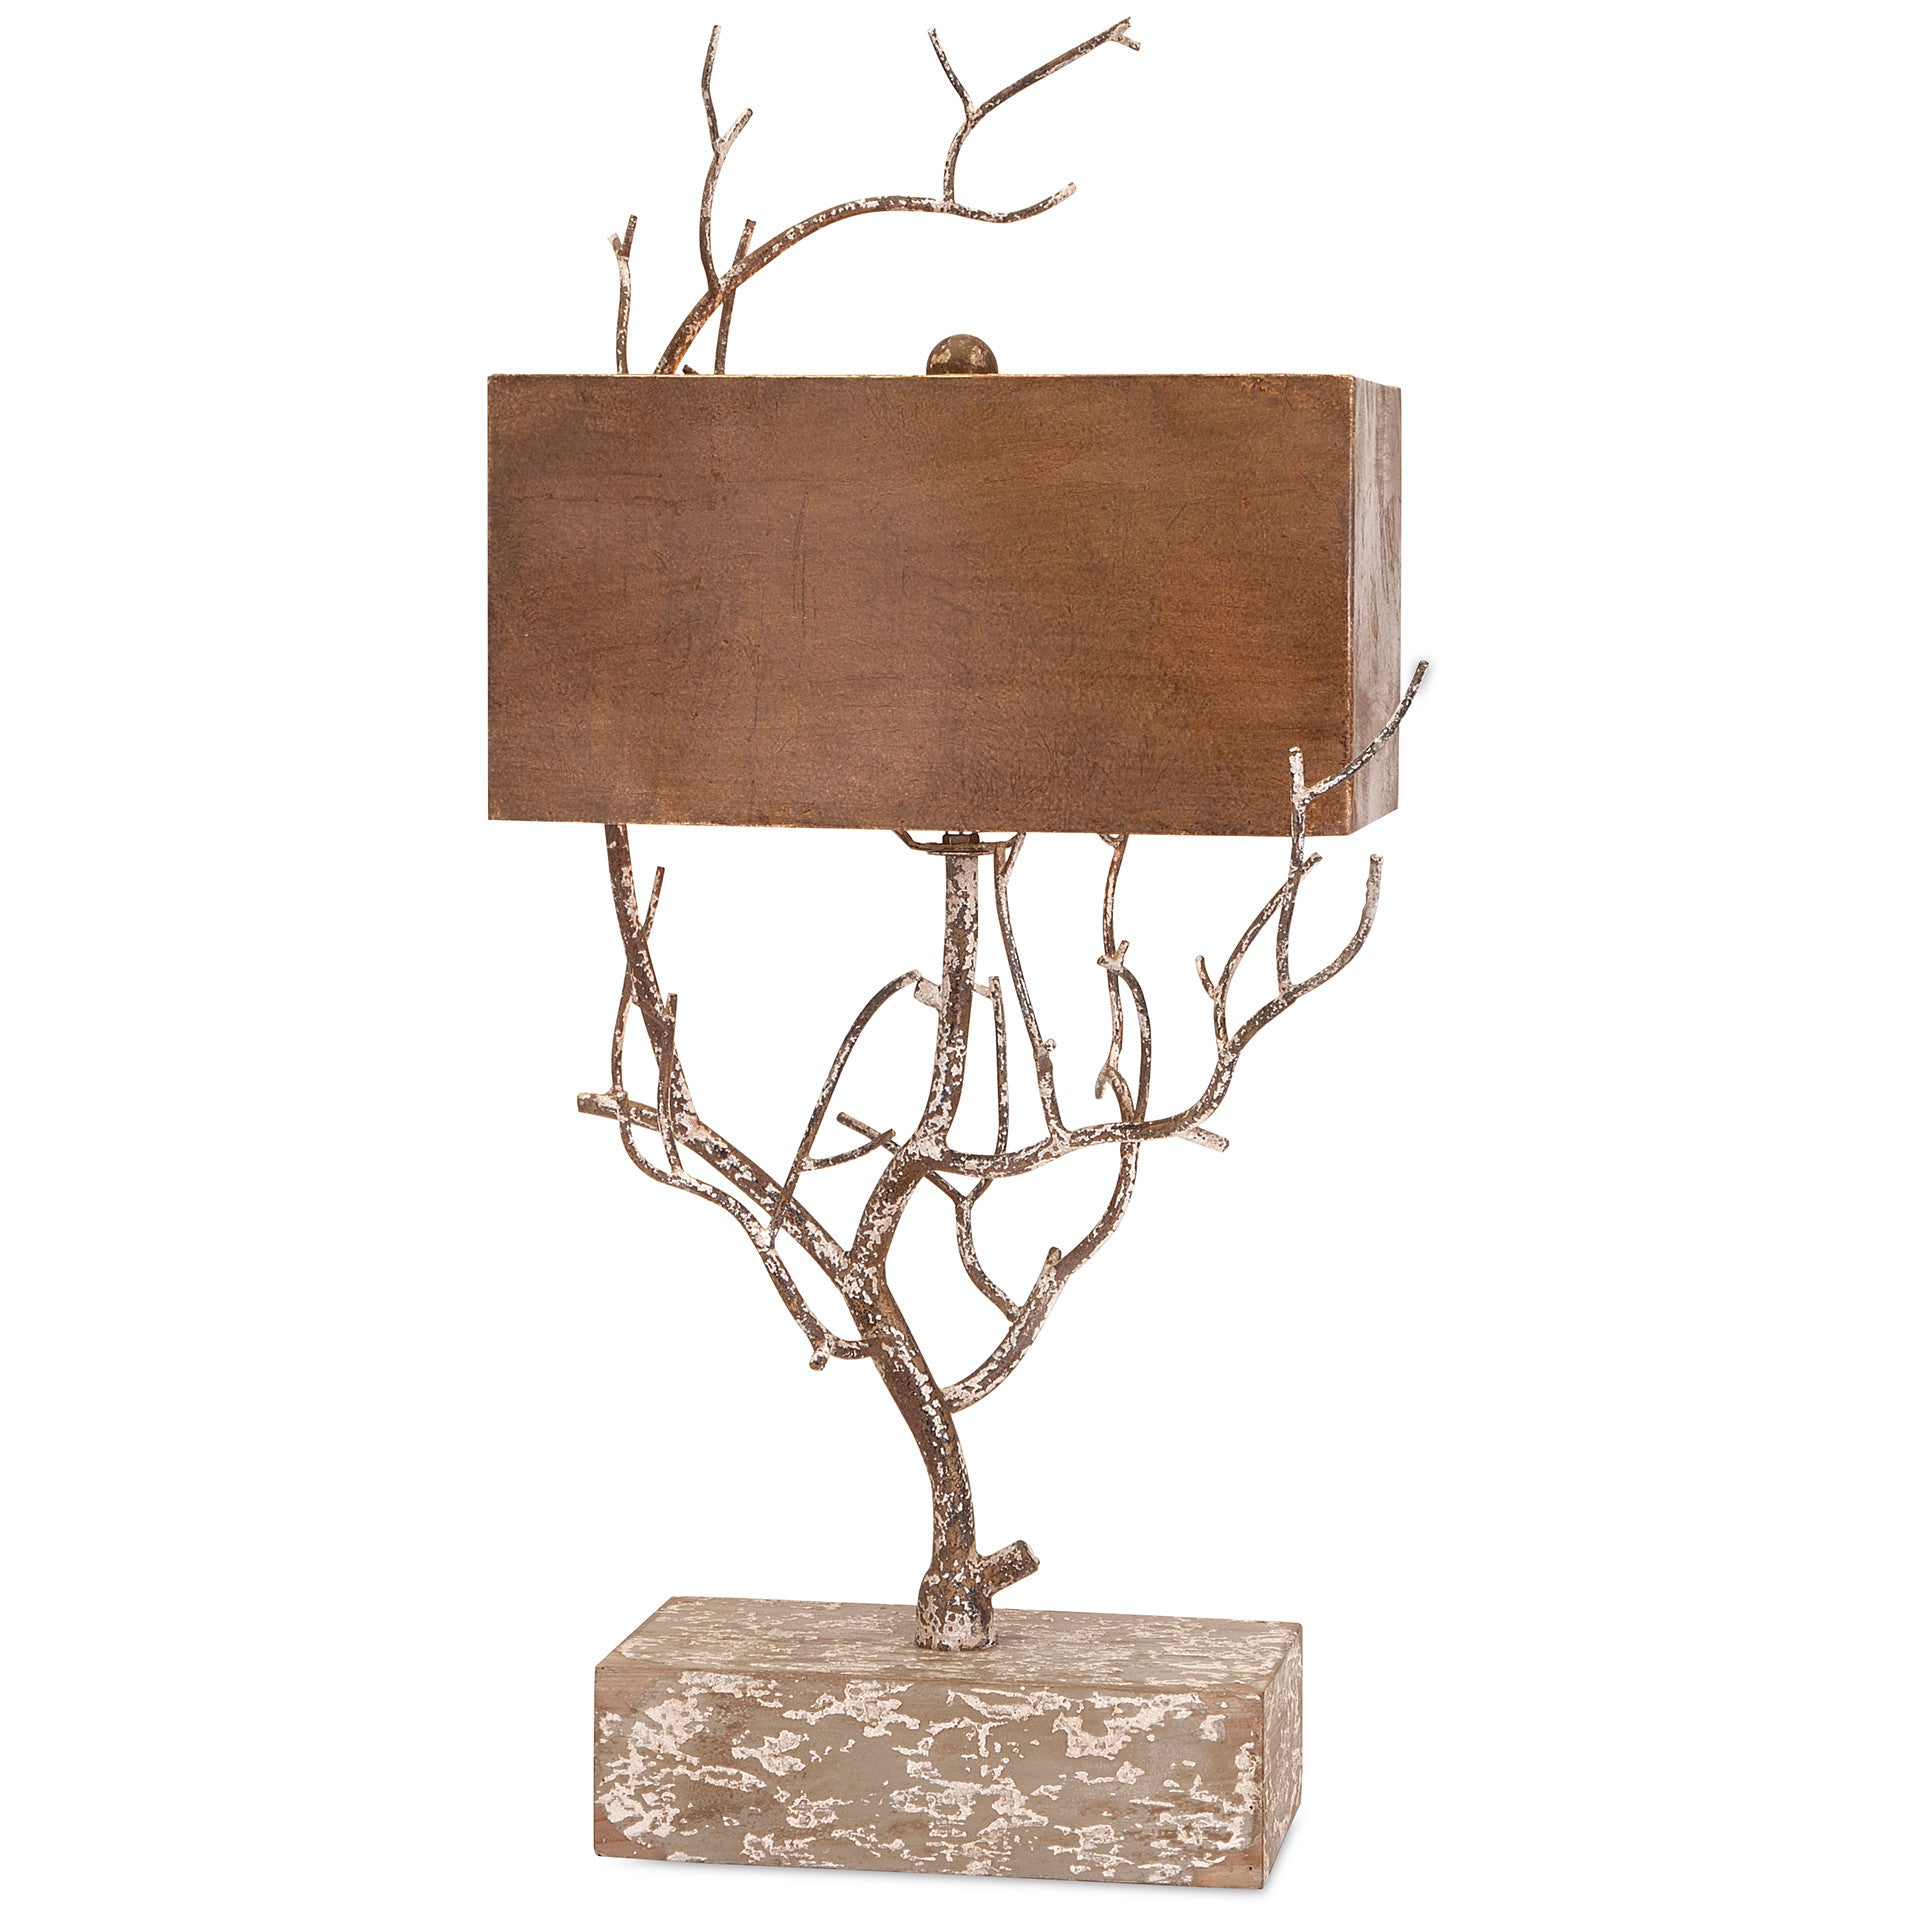 Rustic lodge metal tree branch table lamp woodwaves rustic lodge metal tree branch table lamp mozeypictures Image collections